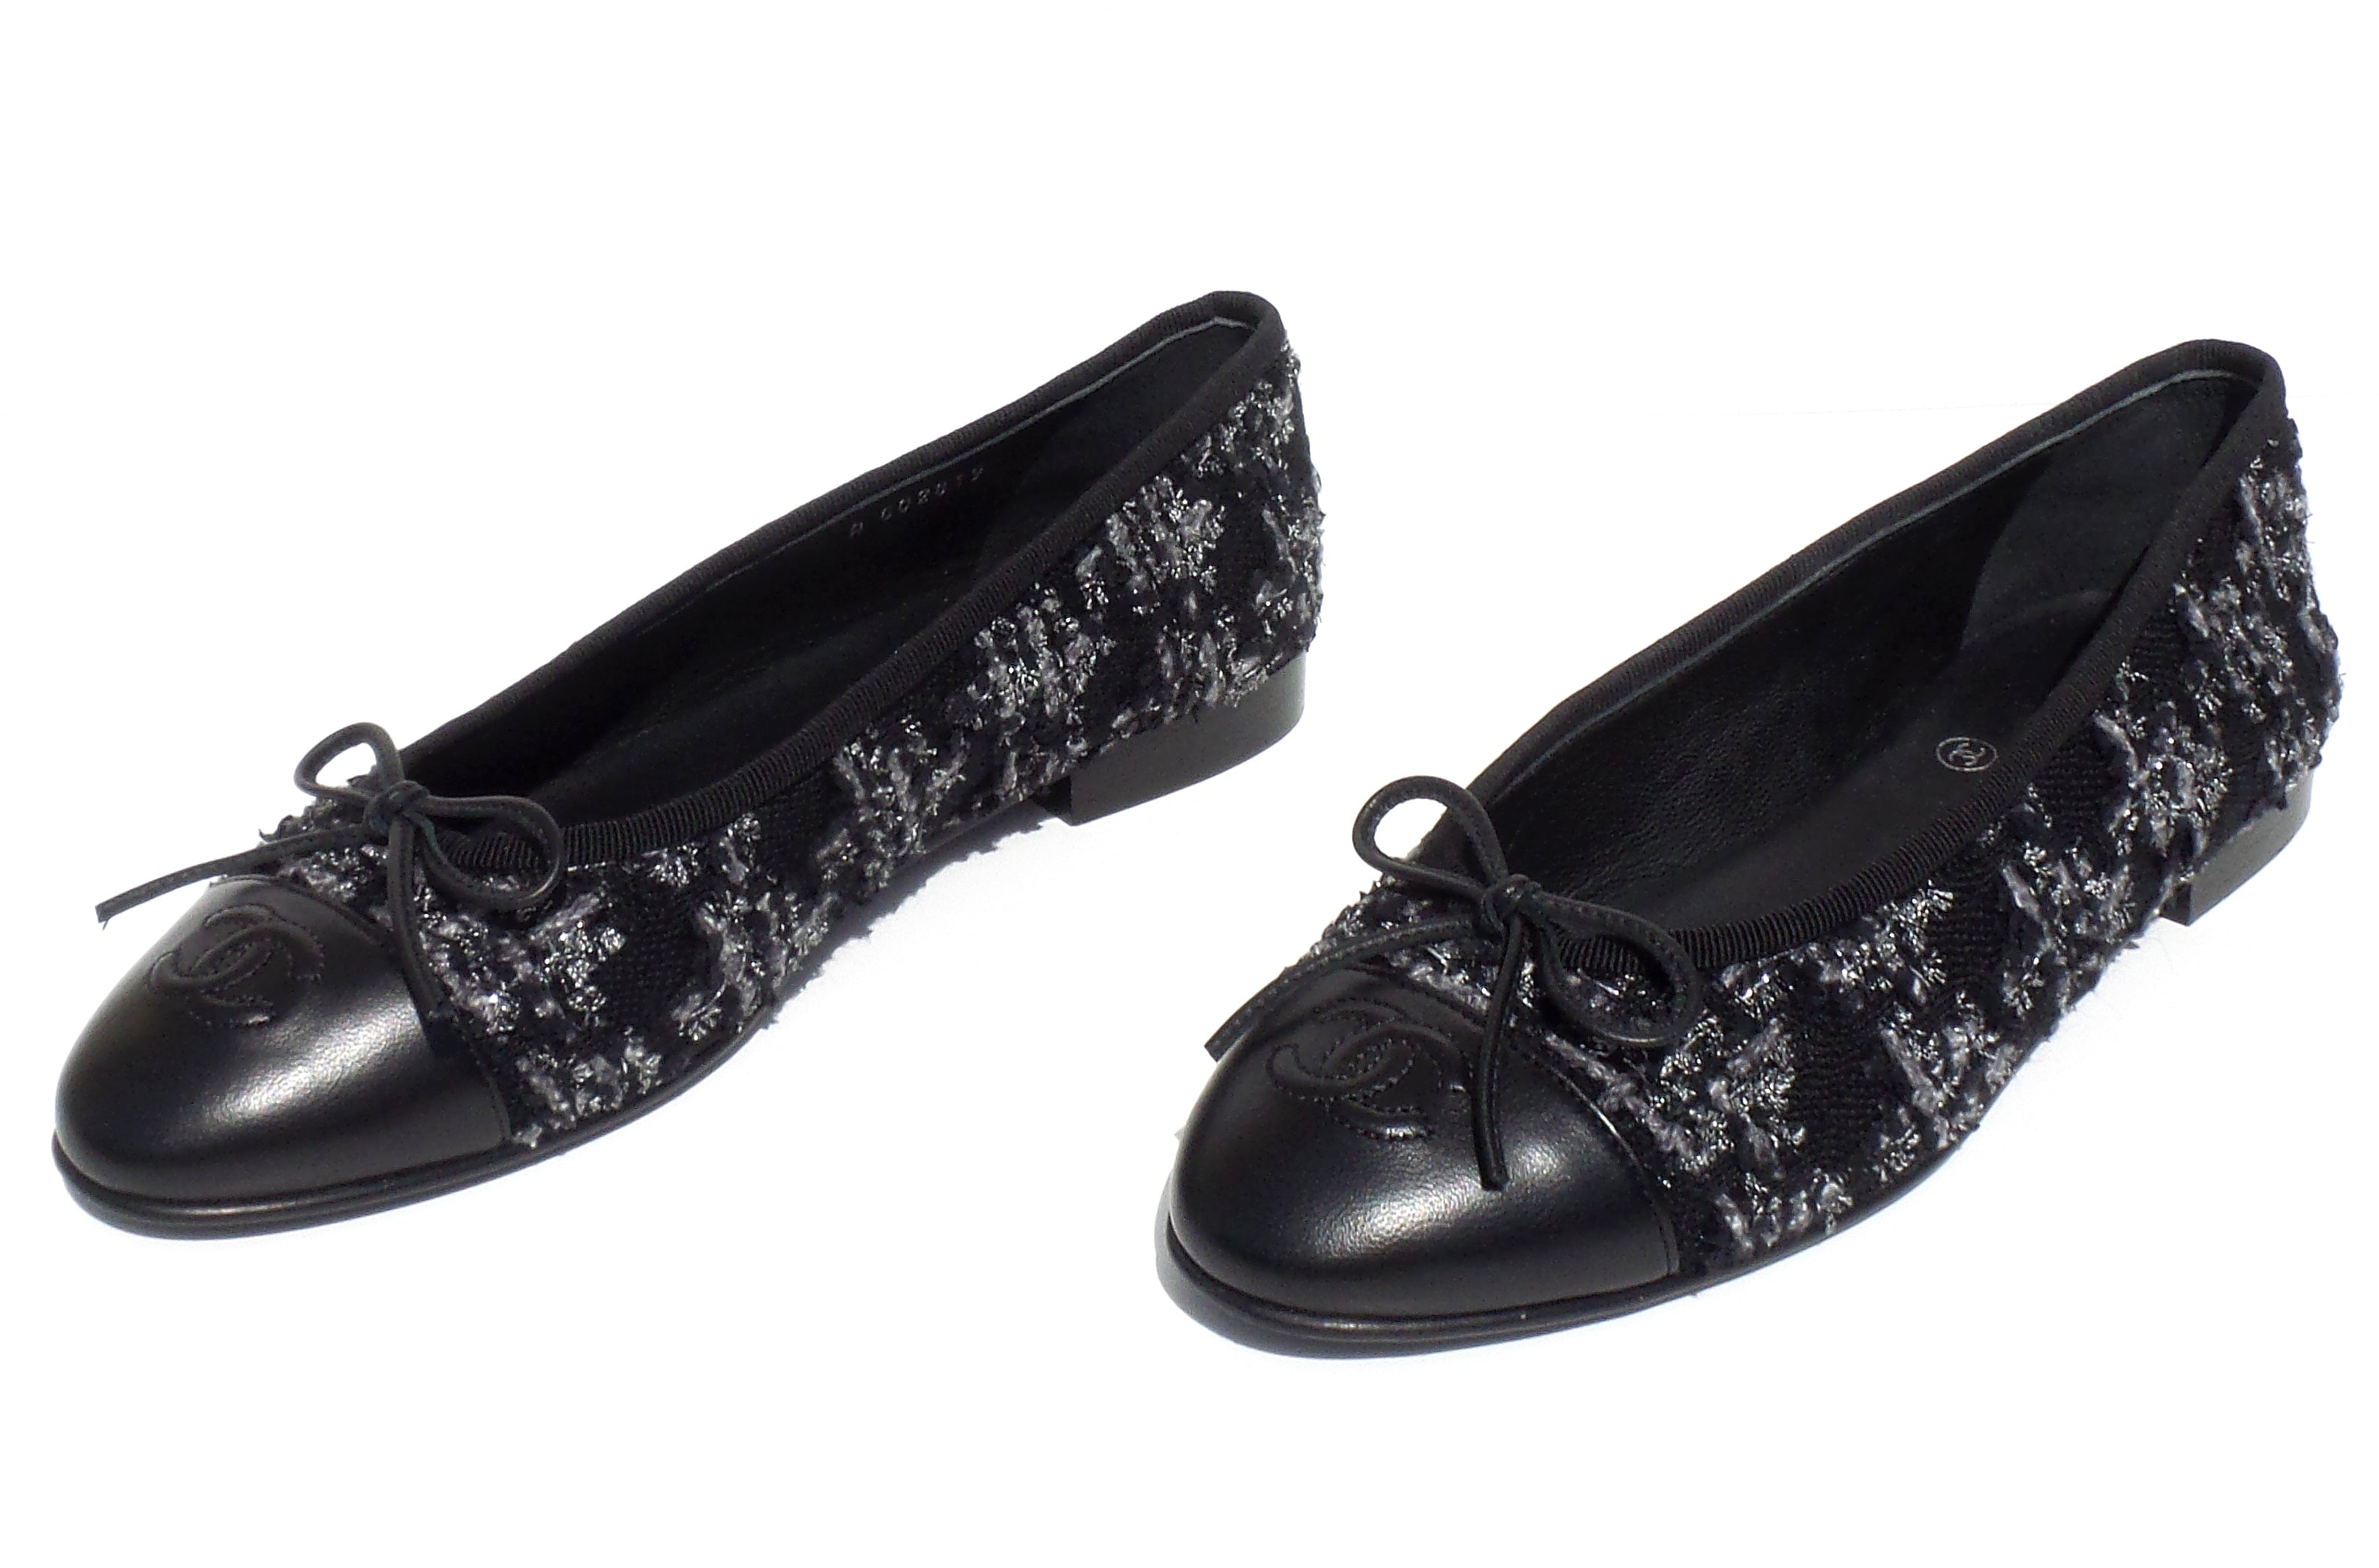 CHANEL Black Gray Silver Tweed Lambskin Leather CC Bow Cap Toe Ballet Flats 37.5